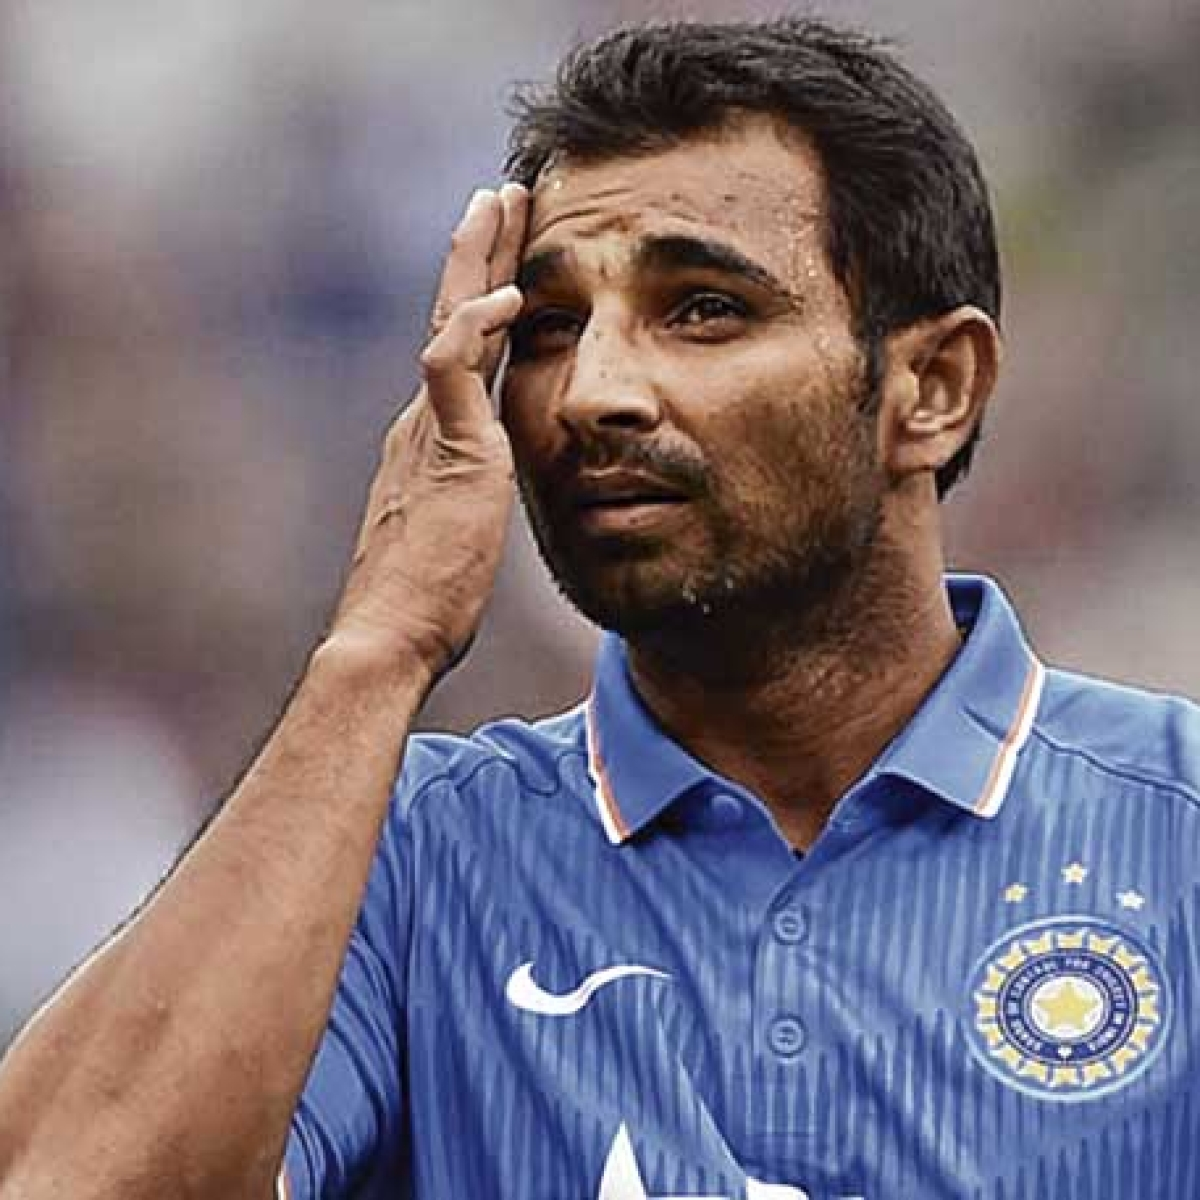 Mohammed Shami doesn't need to surrender, we have got stay: Lawyer